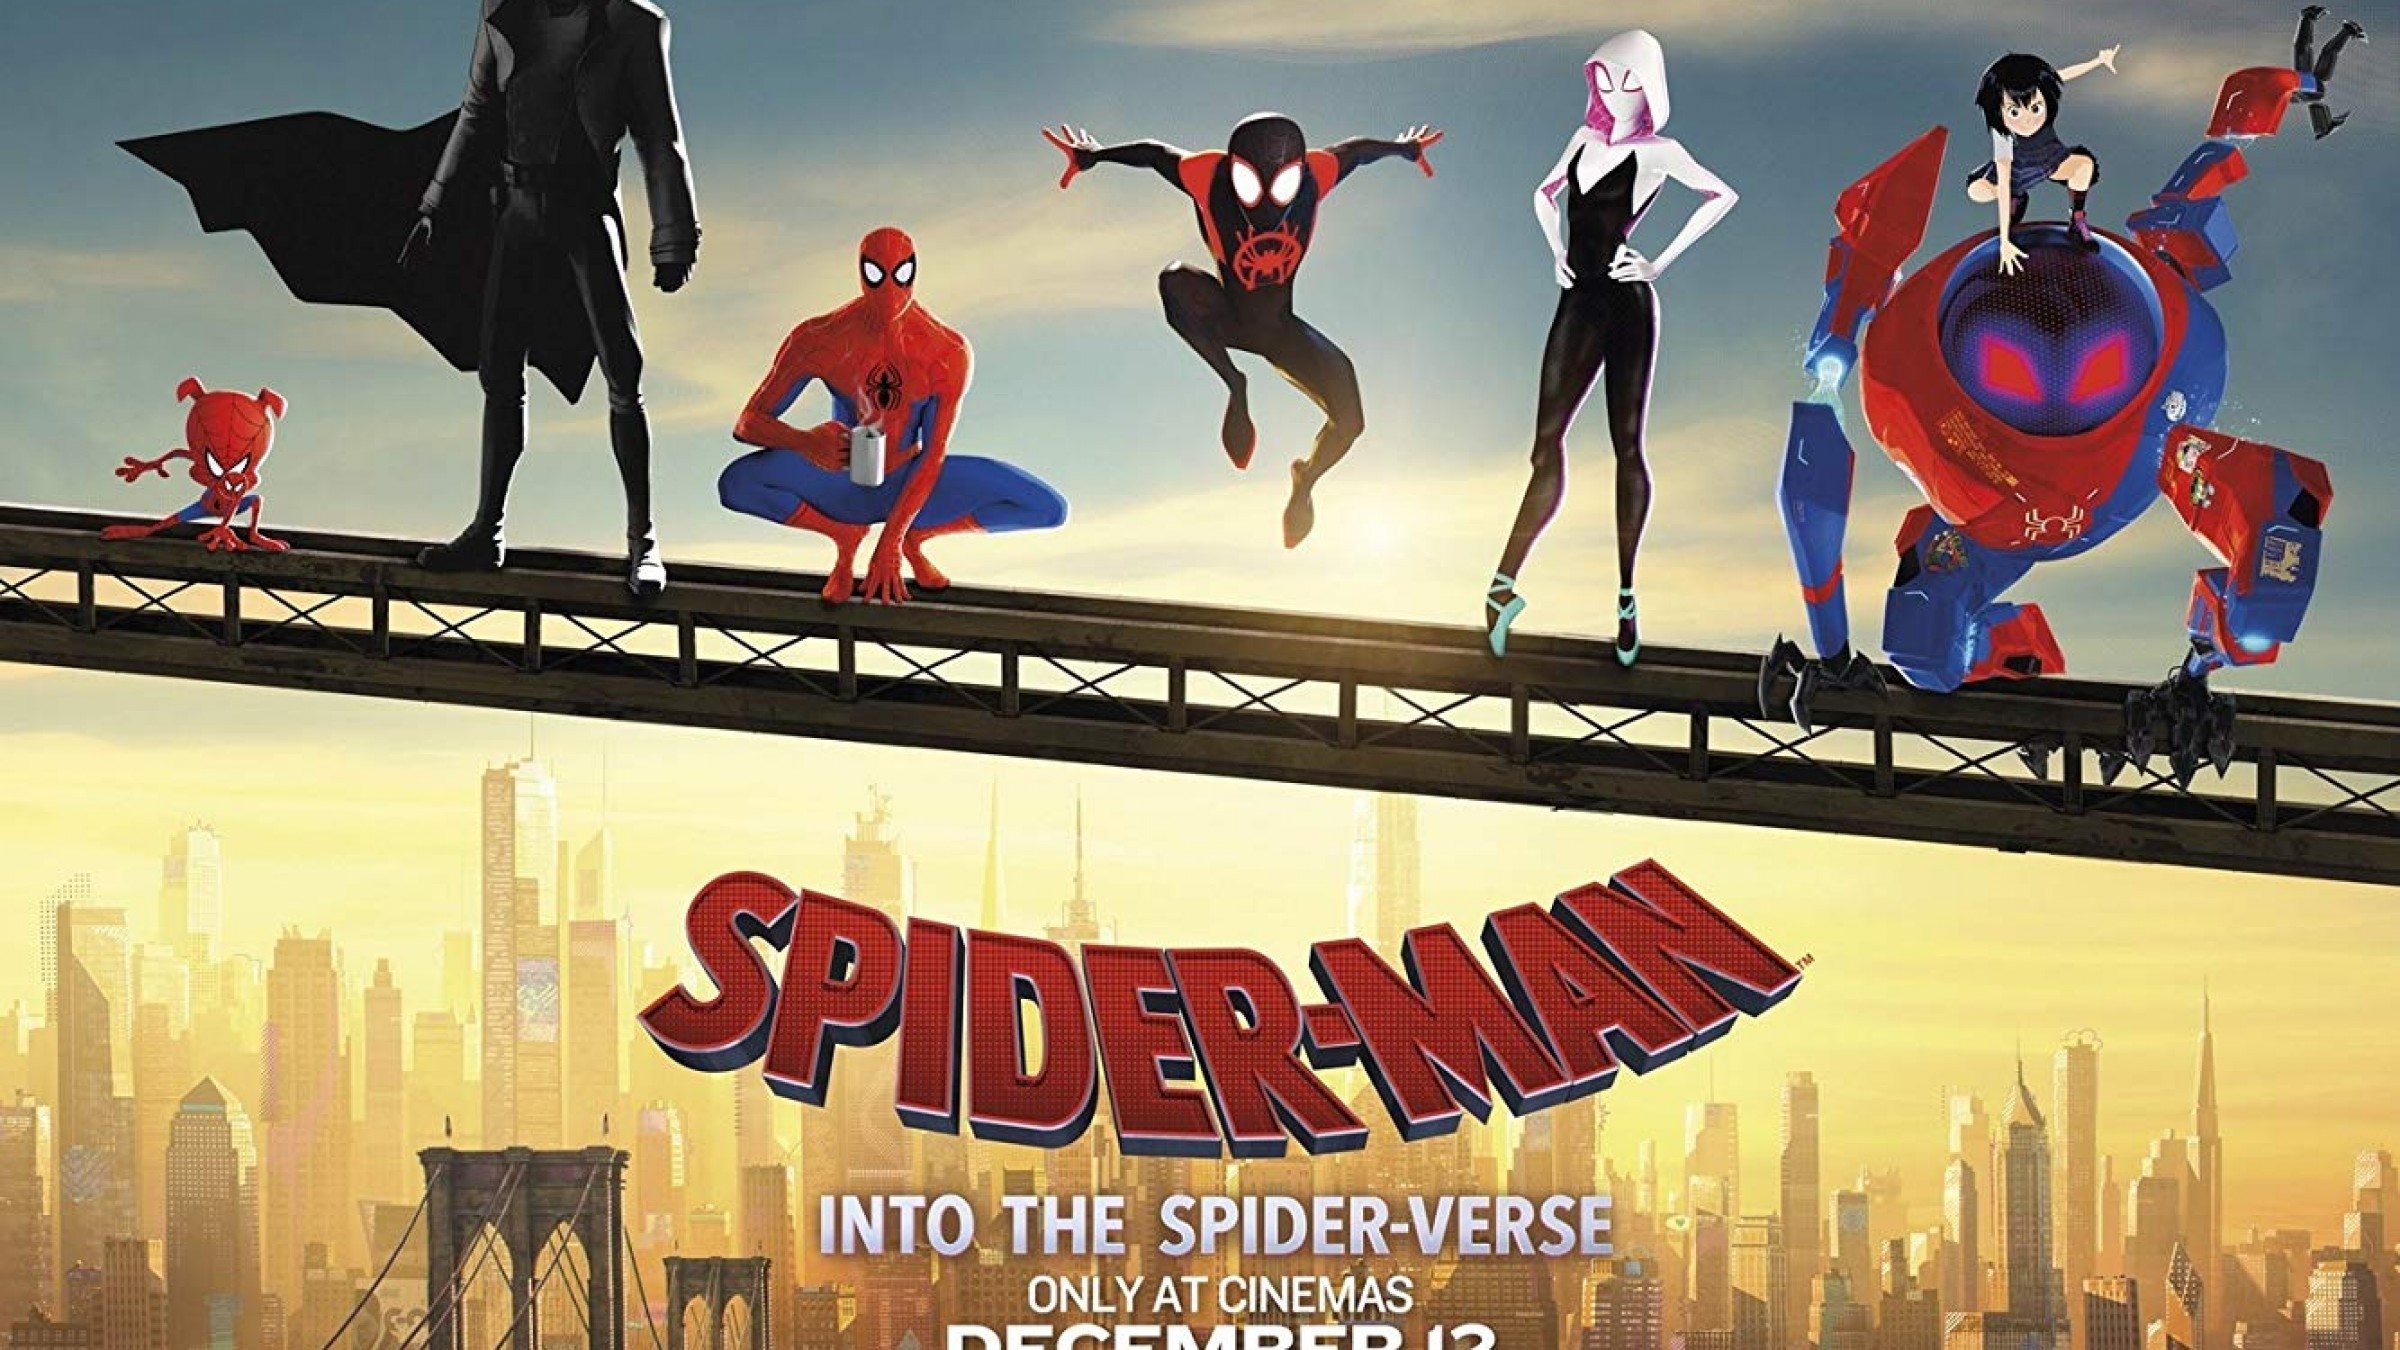 Download the 'Spider-Man: Into The Spider-Verse' Screenplay